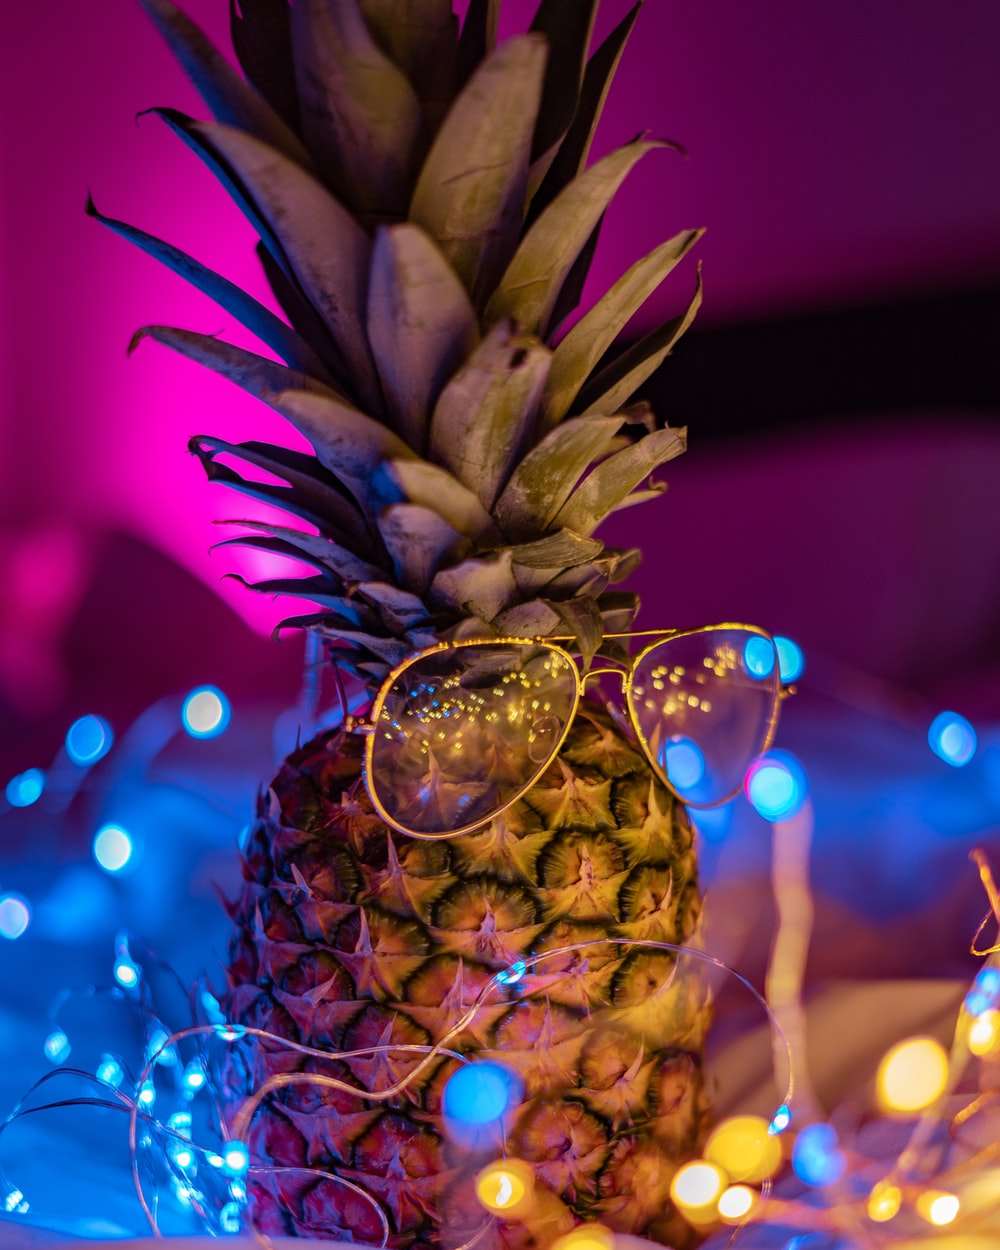 sunglasses on pineapple